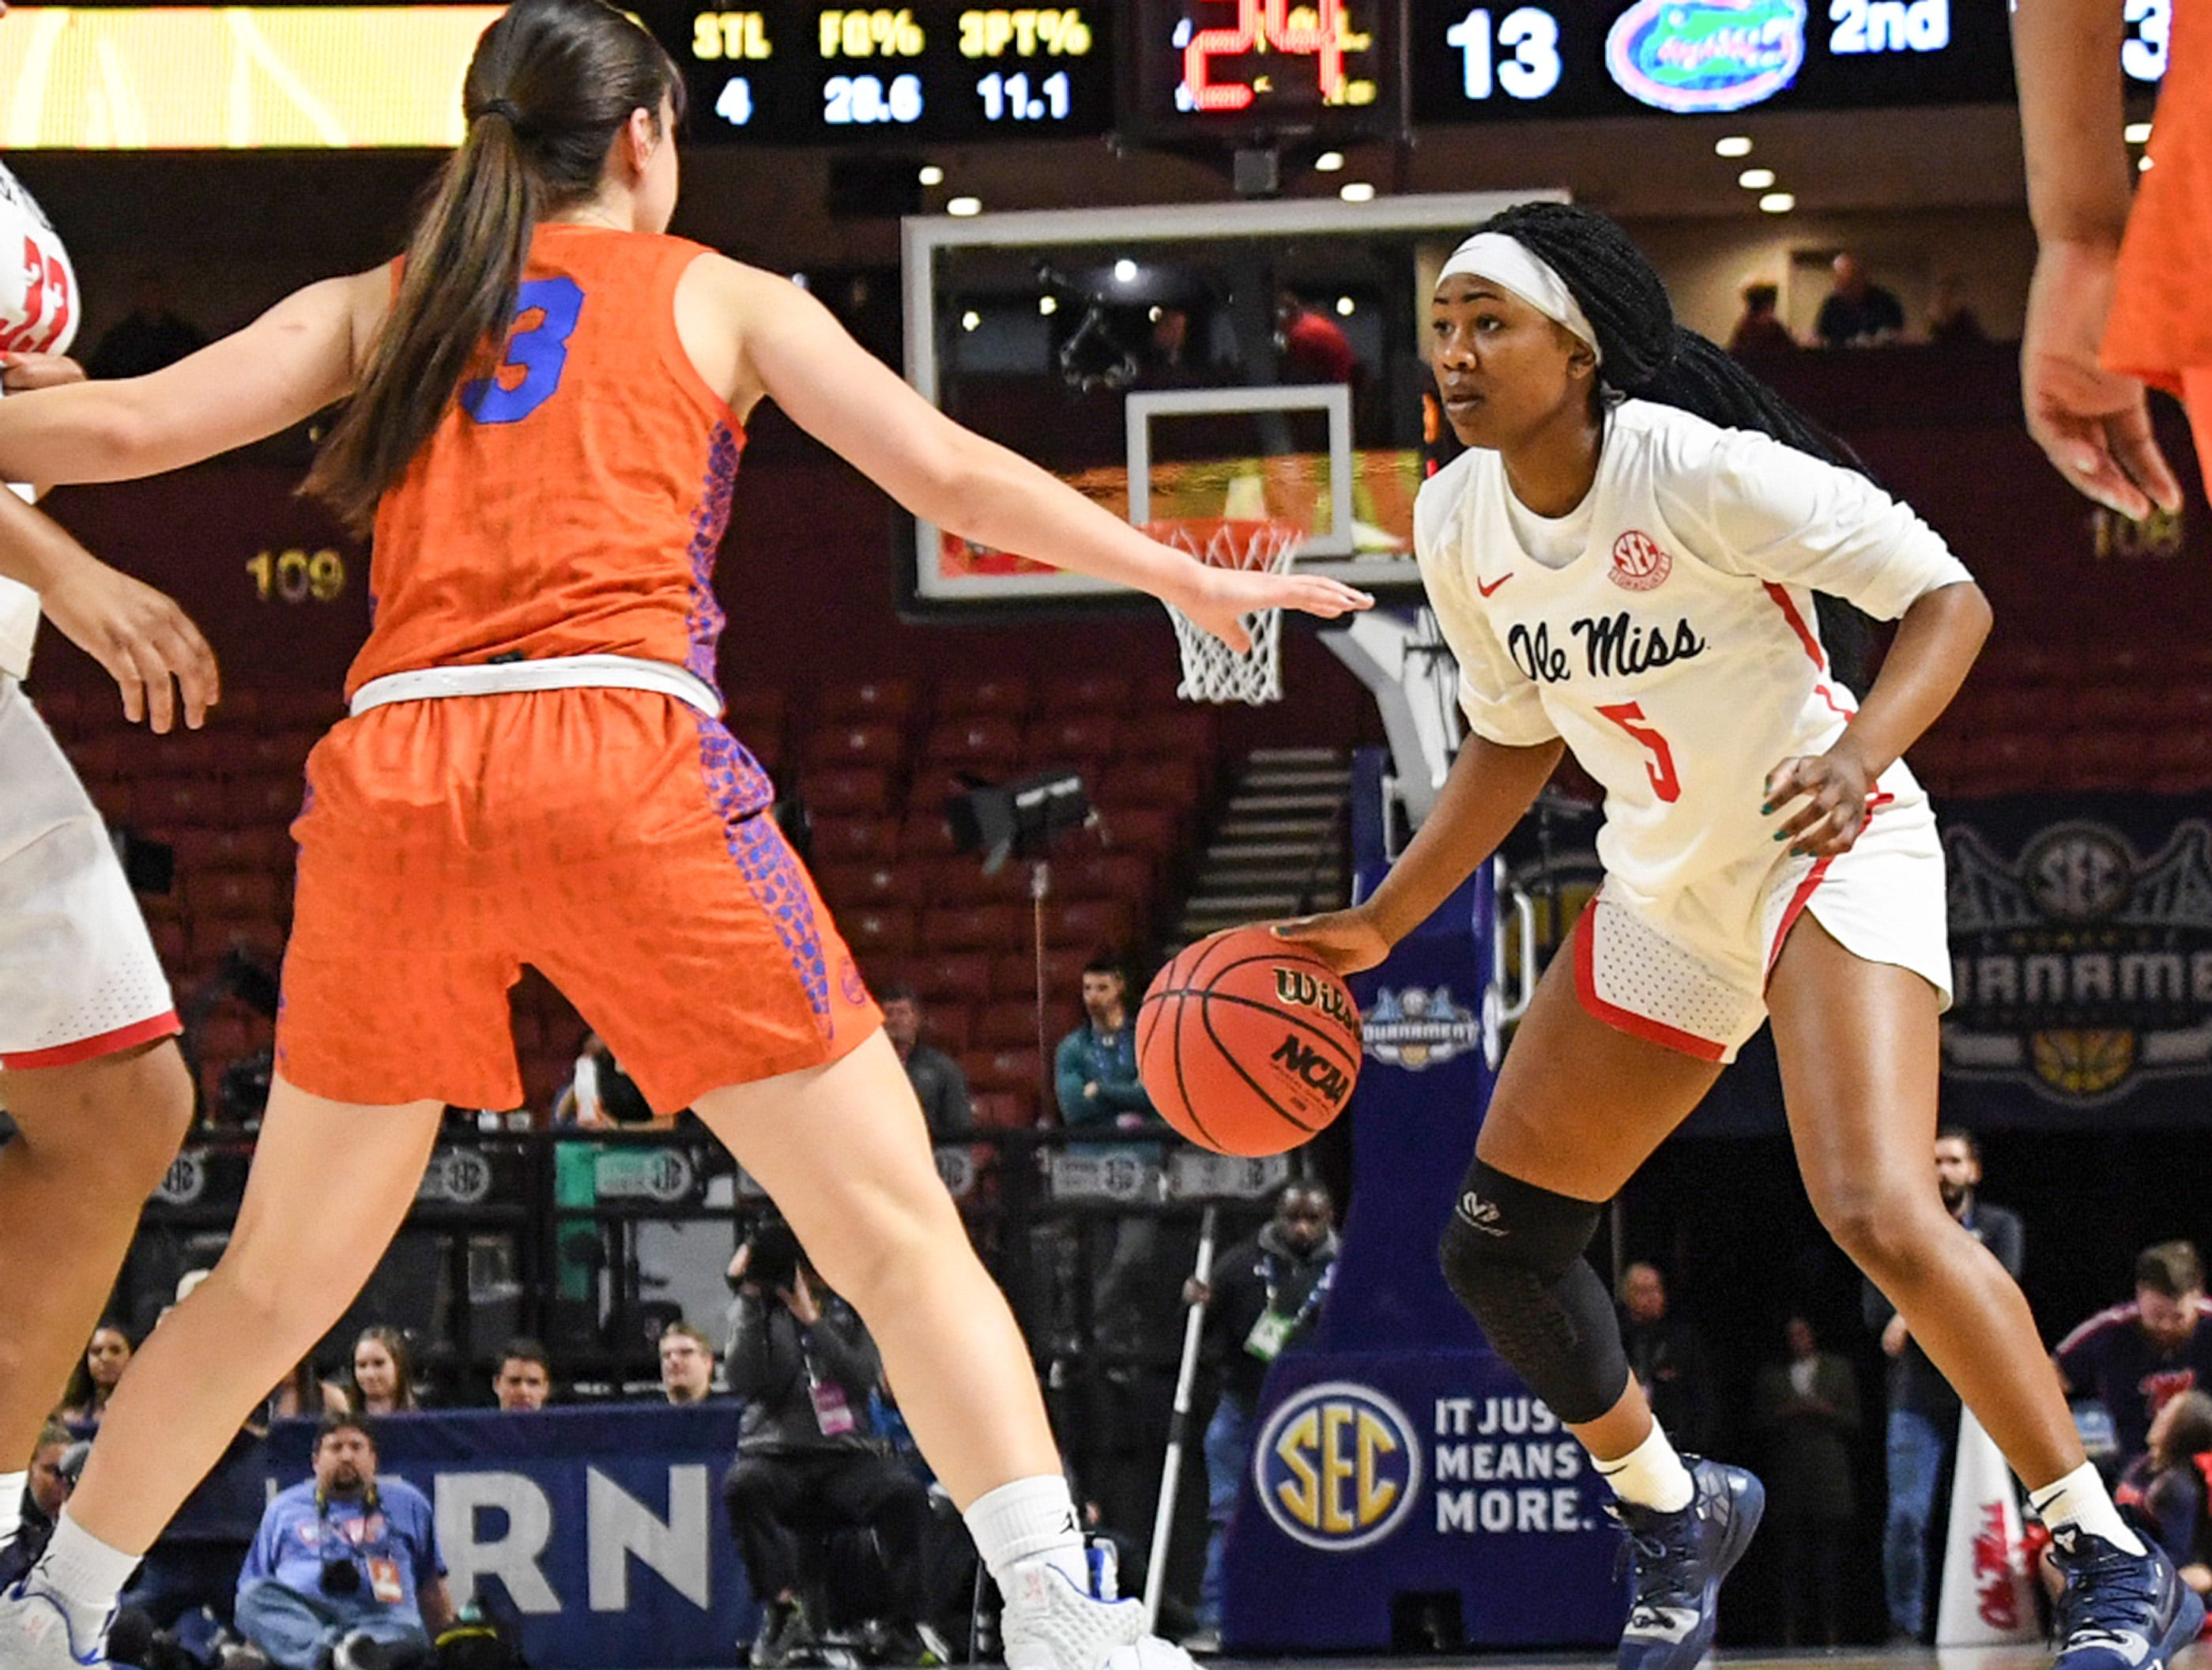 Ole Miss senior Crystal Allen(5) dribbles near Florida guard Funda Nakkasoglu(3) during the first quarter of the Southeastern Conference Women's Tournament game at Bon Secour Wellness Arena in Greenville Wednesday, March 6, 2019.